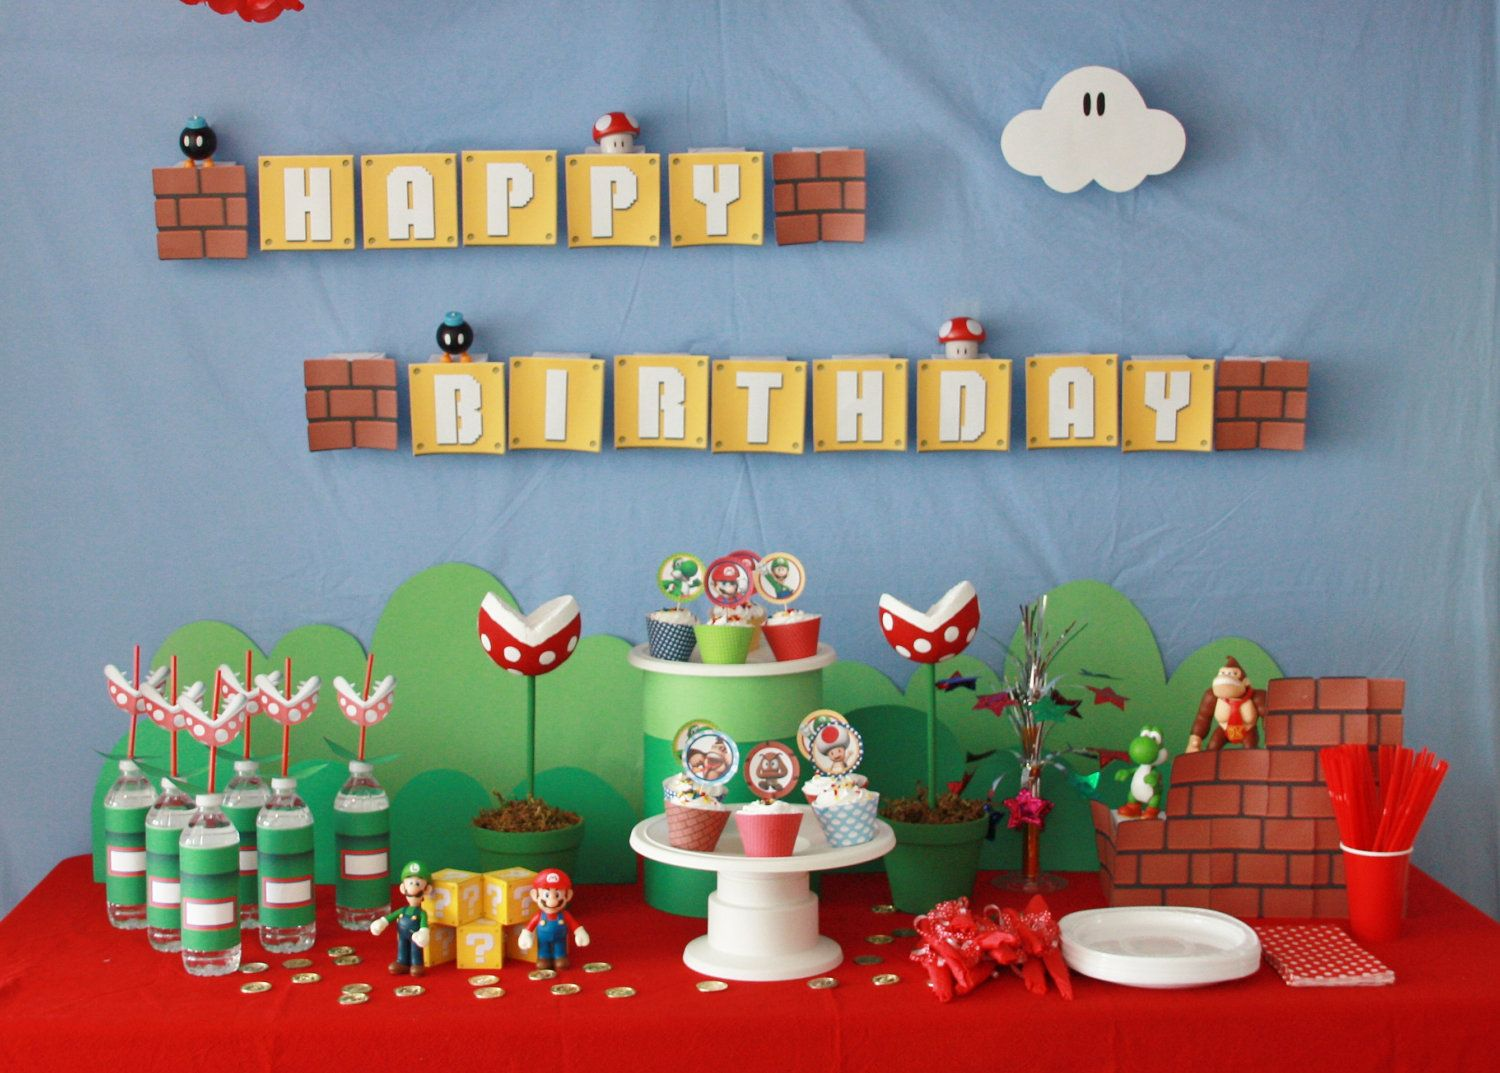 Mario Brothers Aquarium Decorations 236 Best Images About Fiestas On Pinterest Mesas Candy Trees